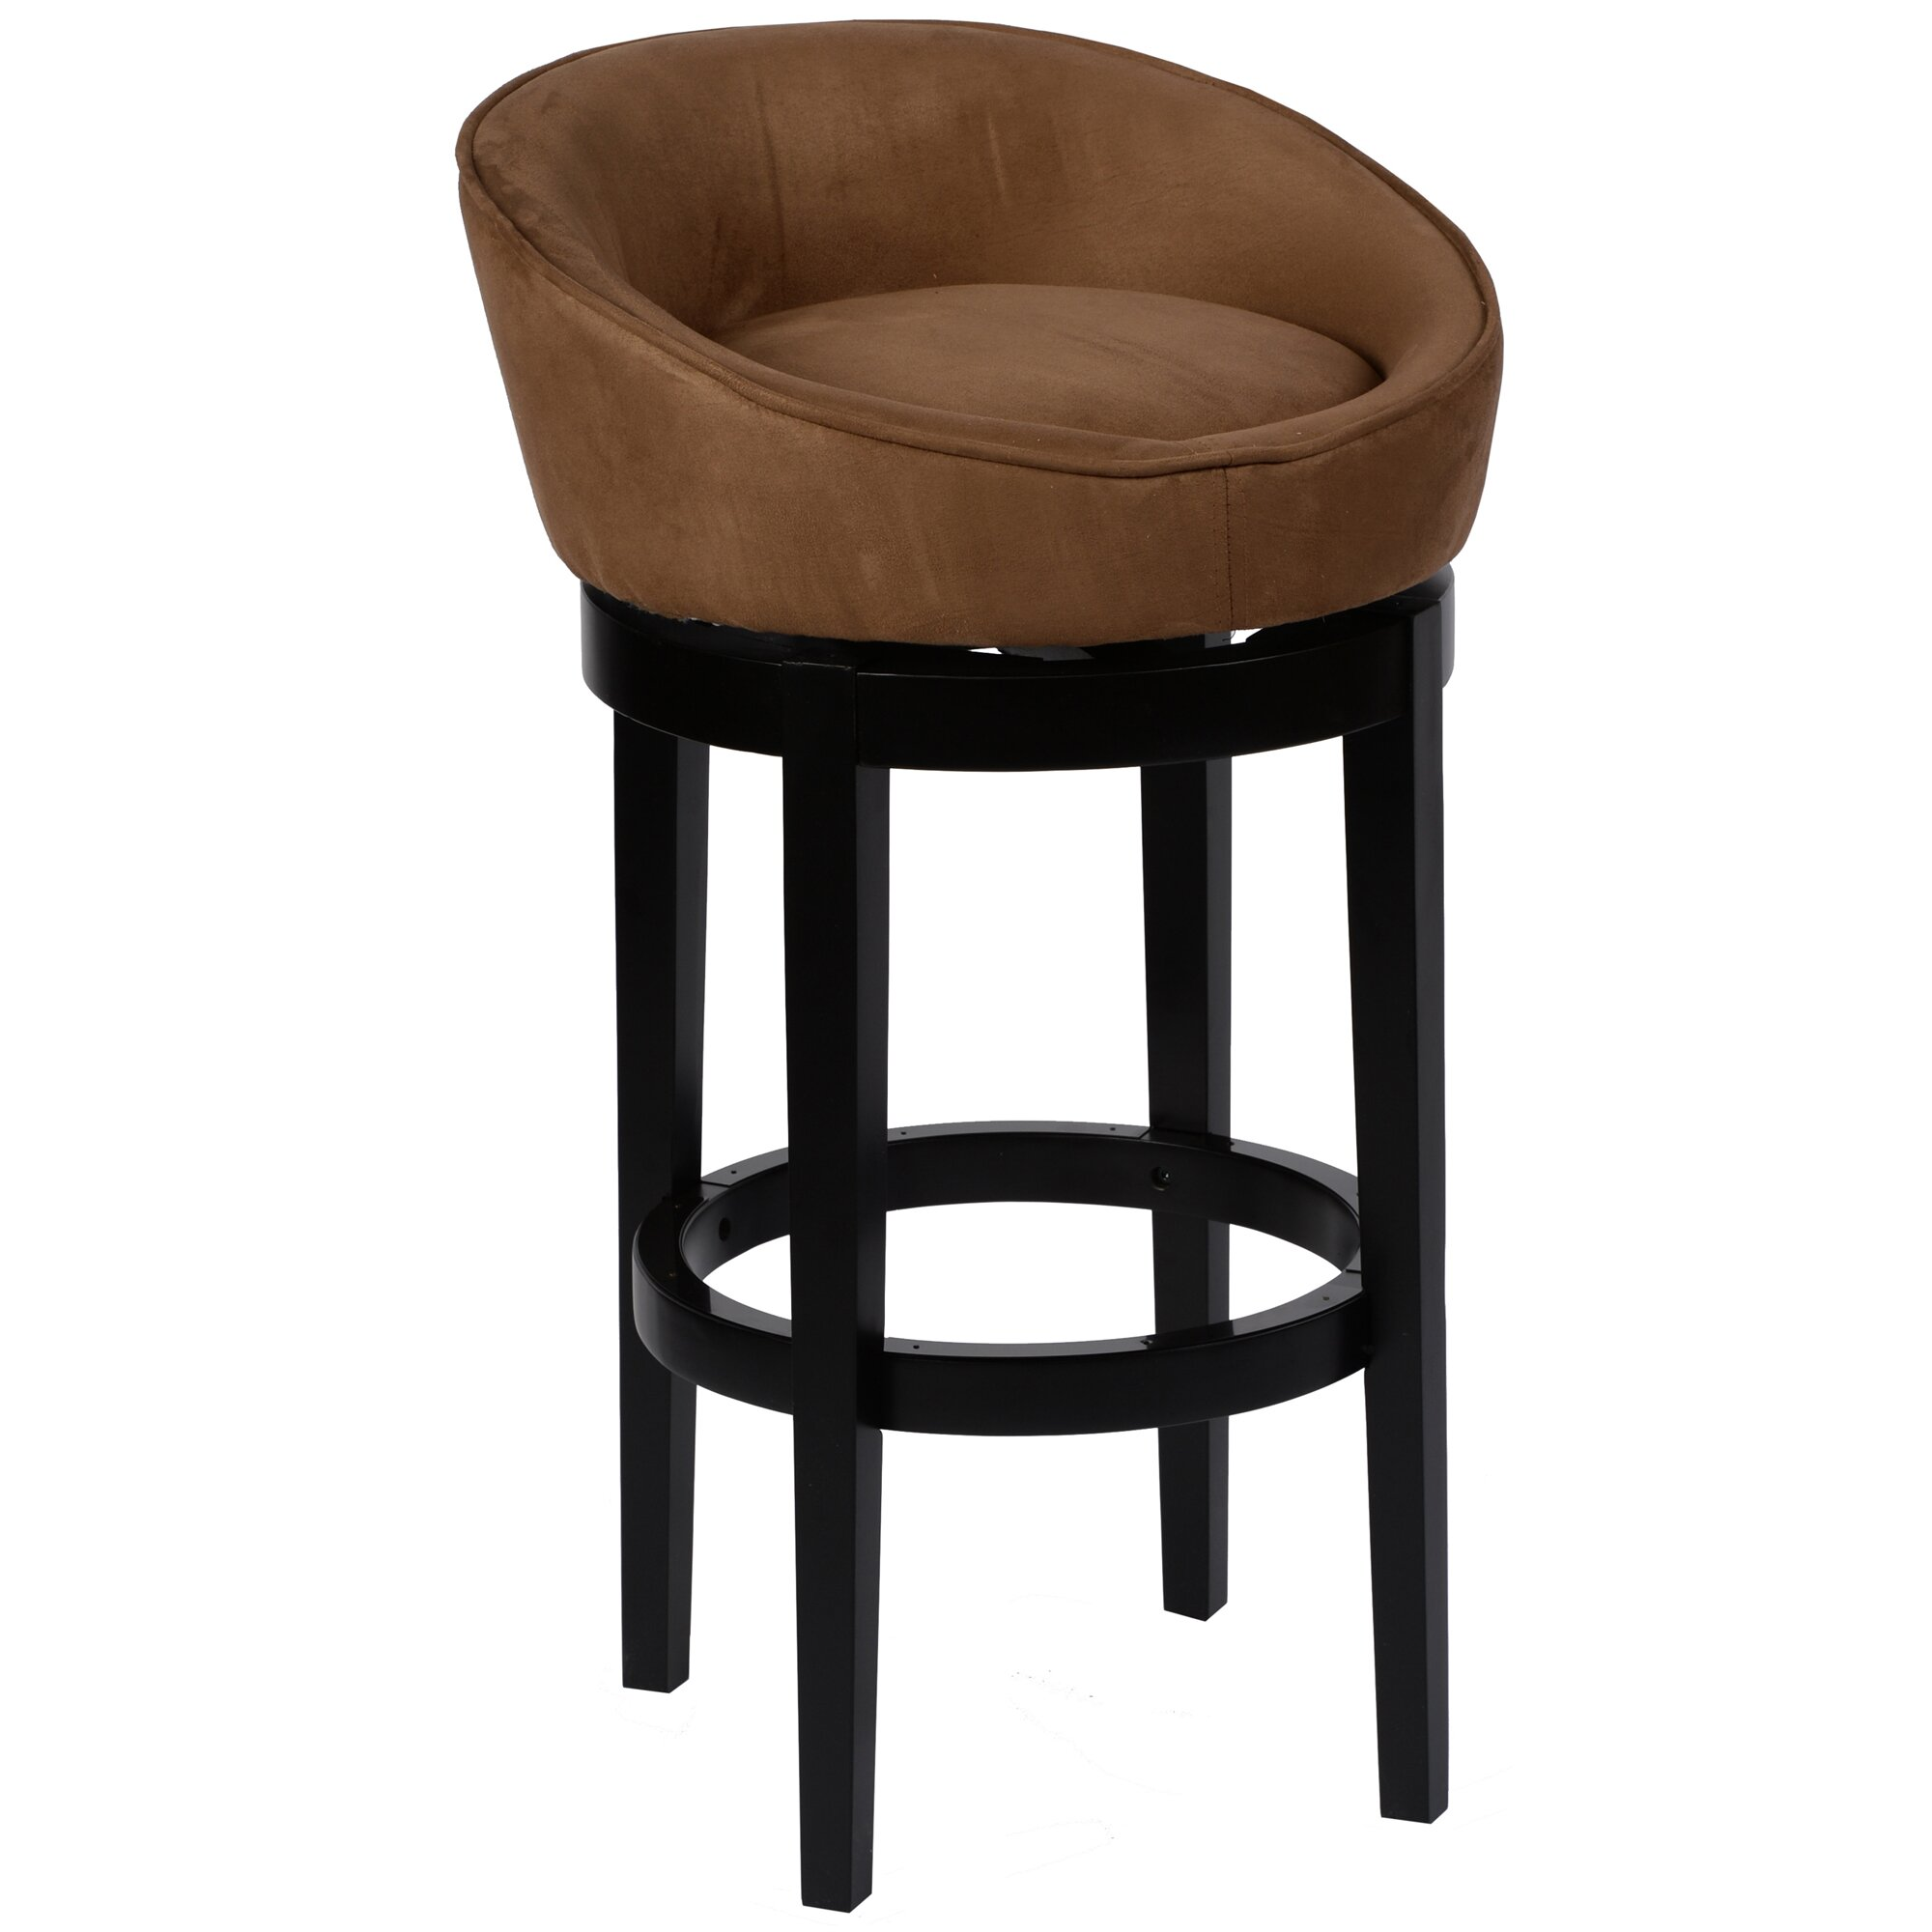 Armen Living Igloo 30 Quot Swivel Bar Stool Amp Reviews Wayfair